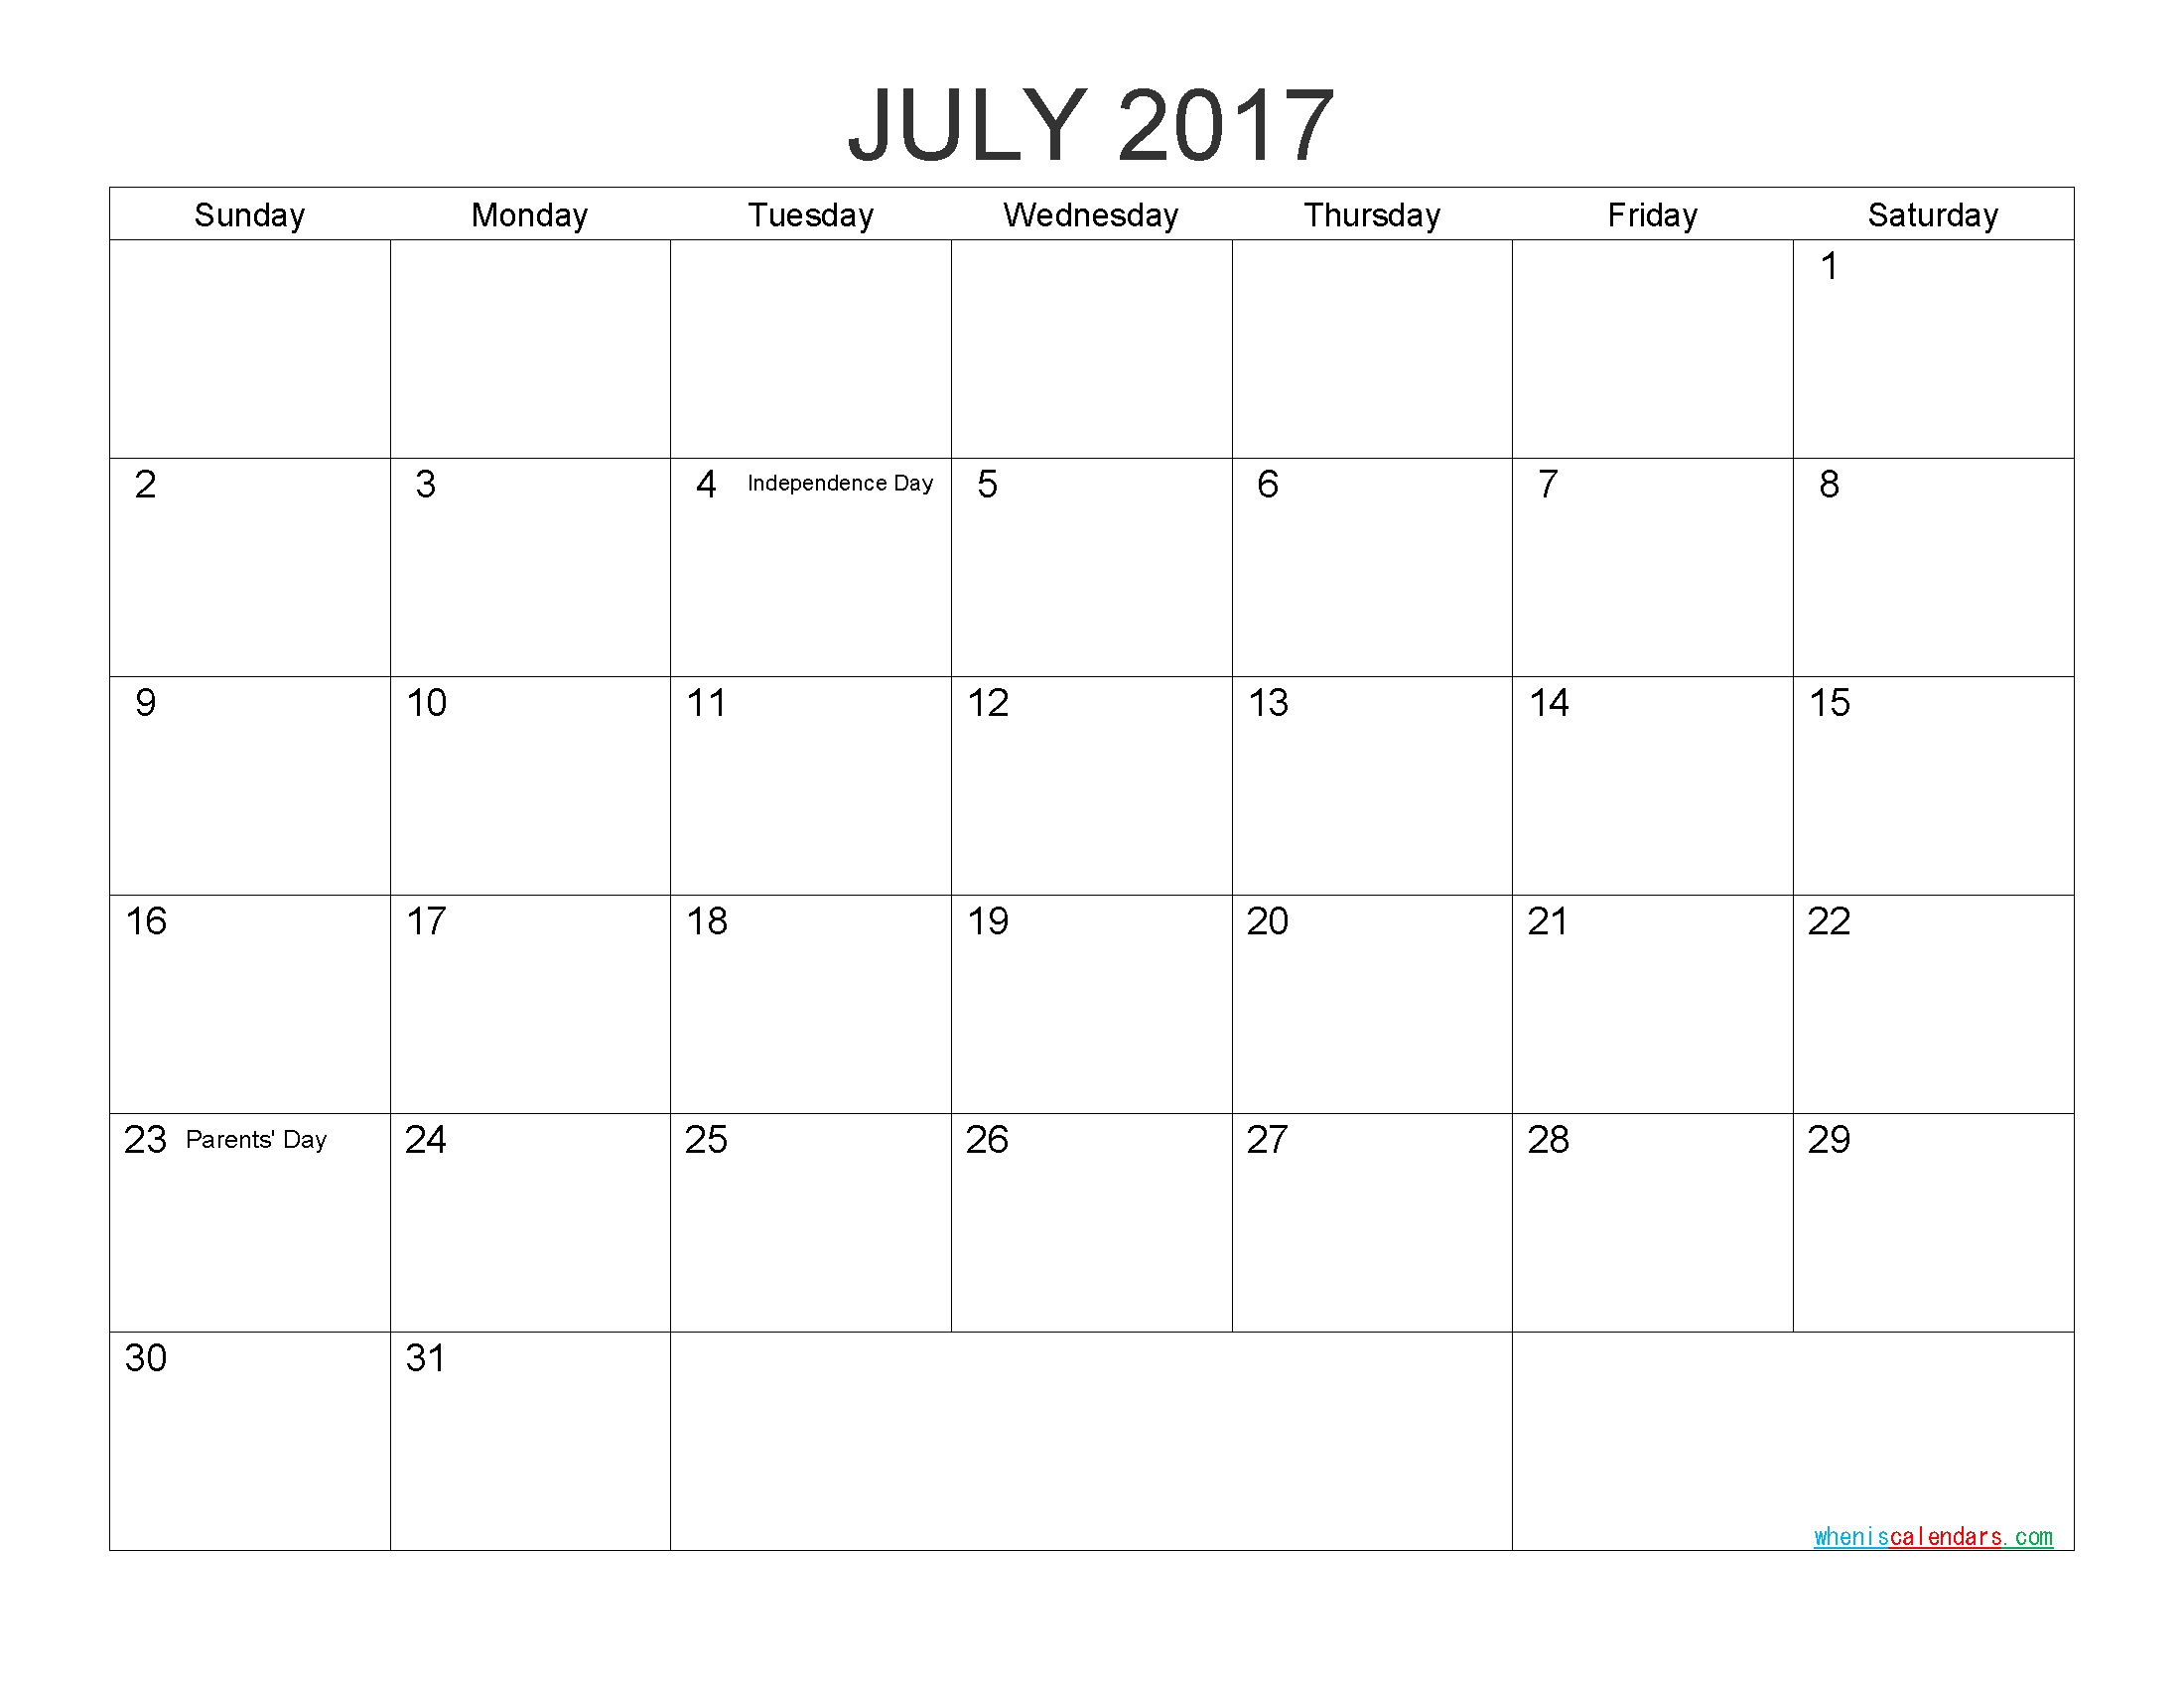 Download Free Calendar July 2017 Printable Calendar with Holidays as PDF and Image